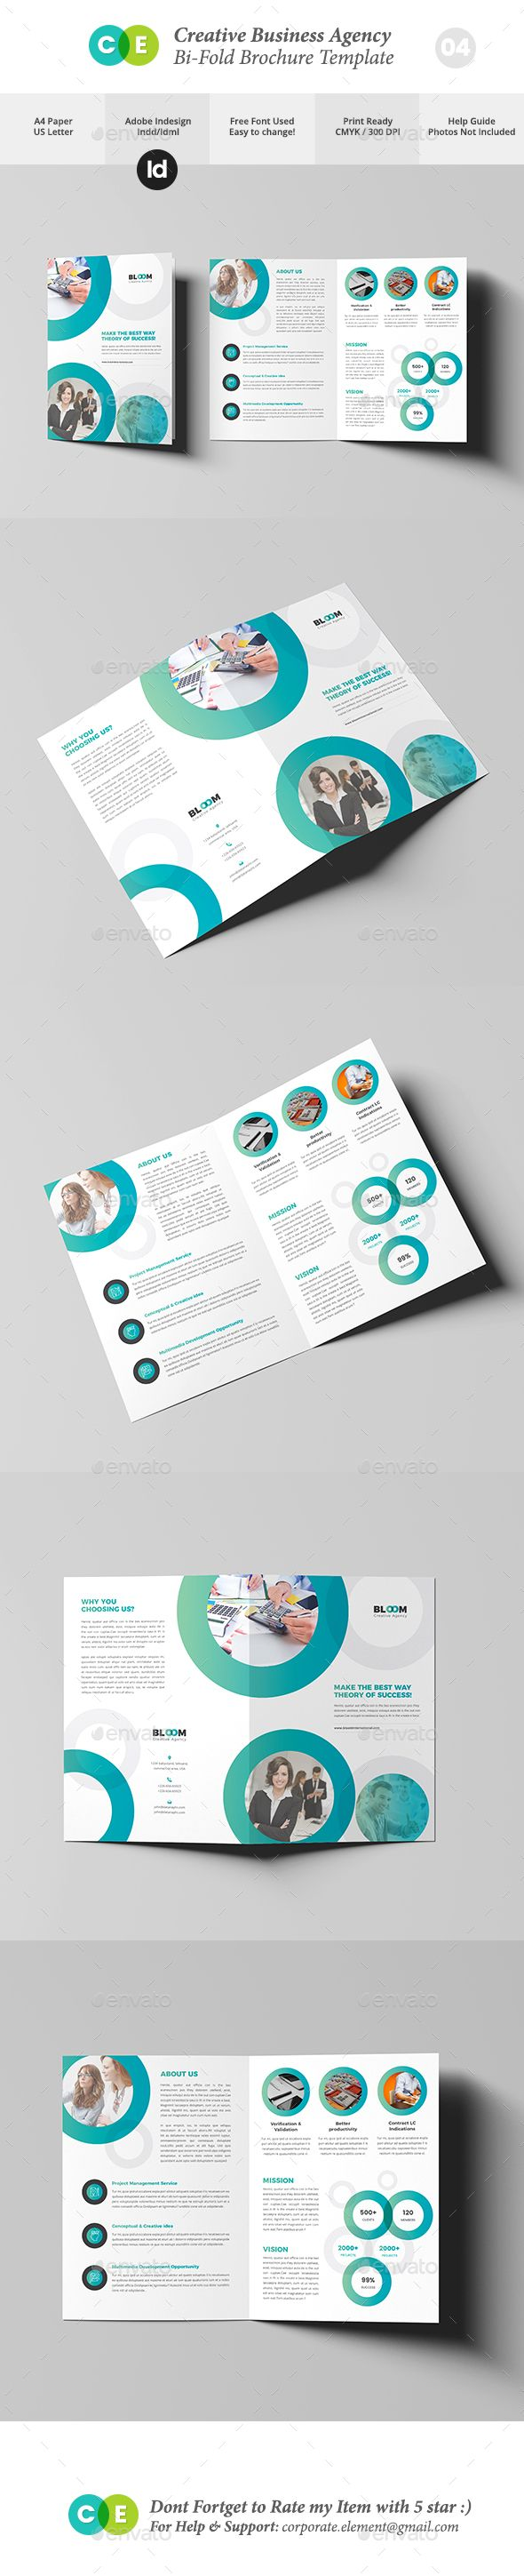 Business Creative Agency Bi-Fold Brochure V04 | Diseño editorial y ...